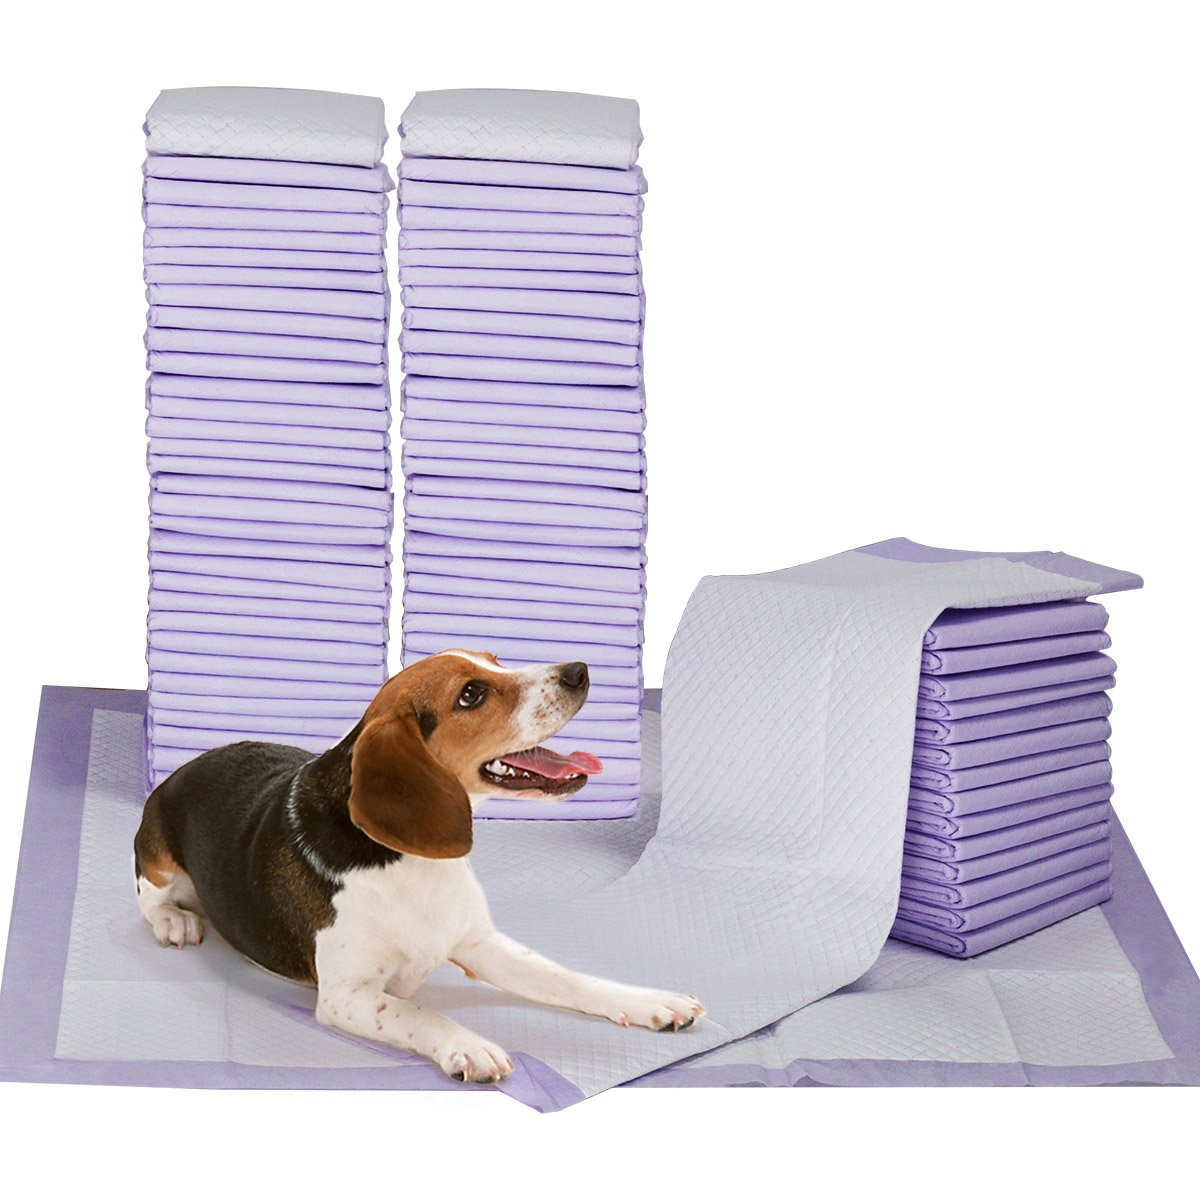 23 X 24 in 100 pack 23 X 24 in 100 pack Petphabet 100 Pack Dog Pee Pads 23 by 24 Inches,Lavender Scented Dog Training Pads with Attractant